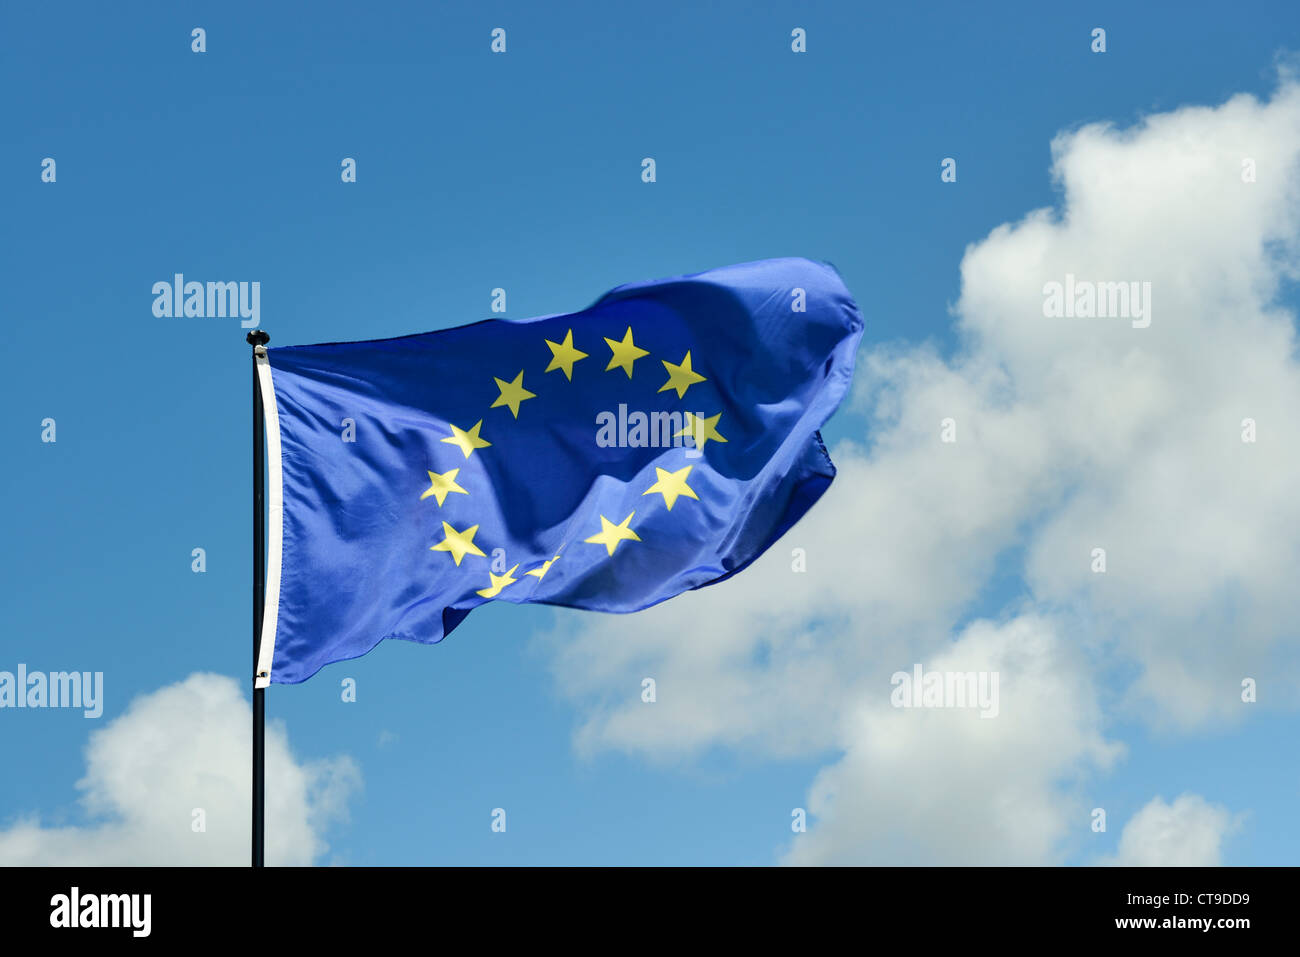 EU European FlagStock Photo